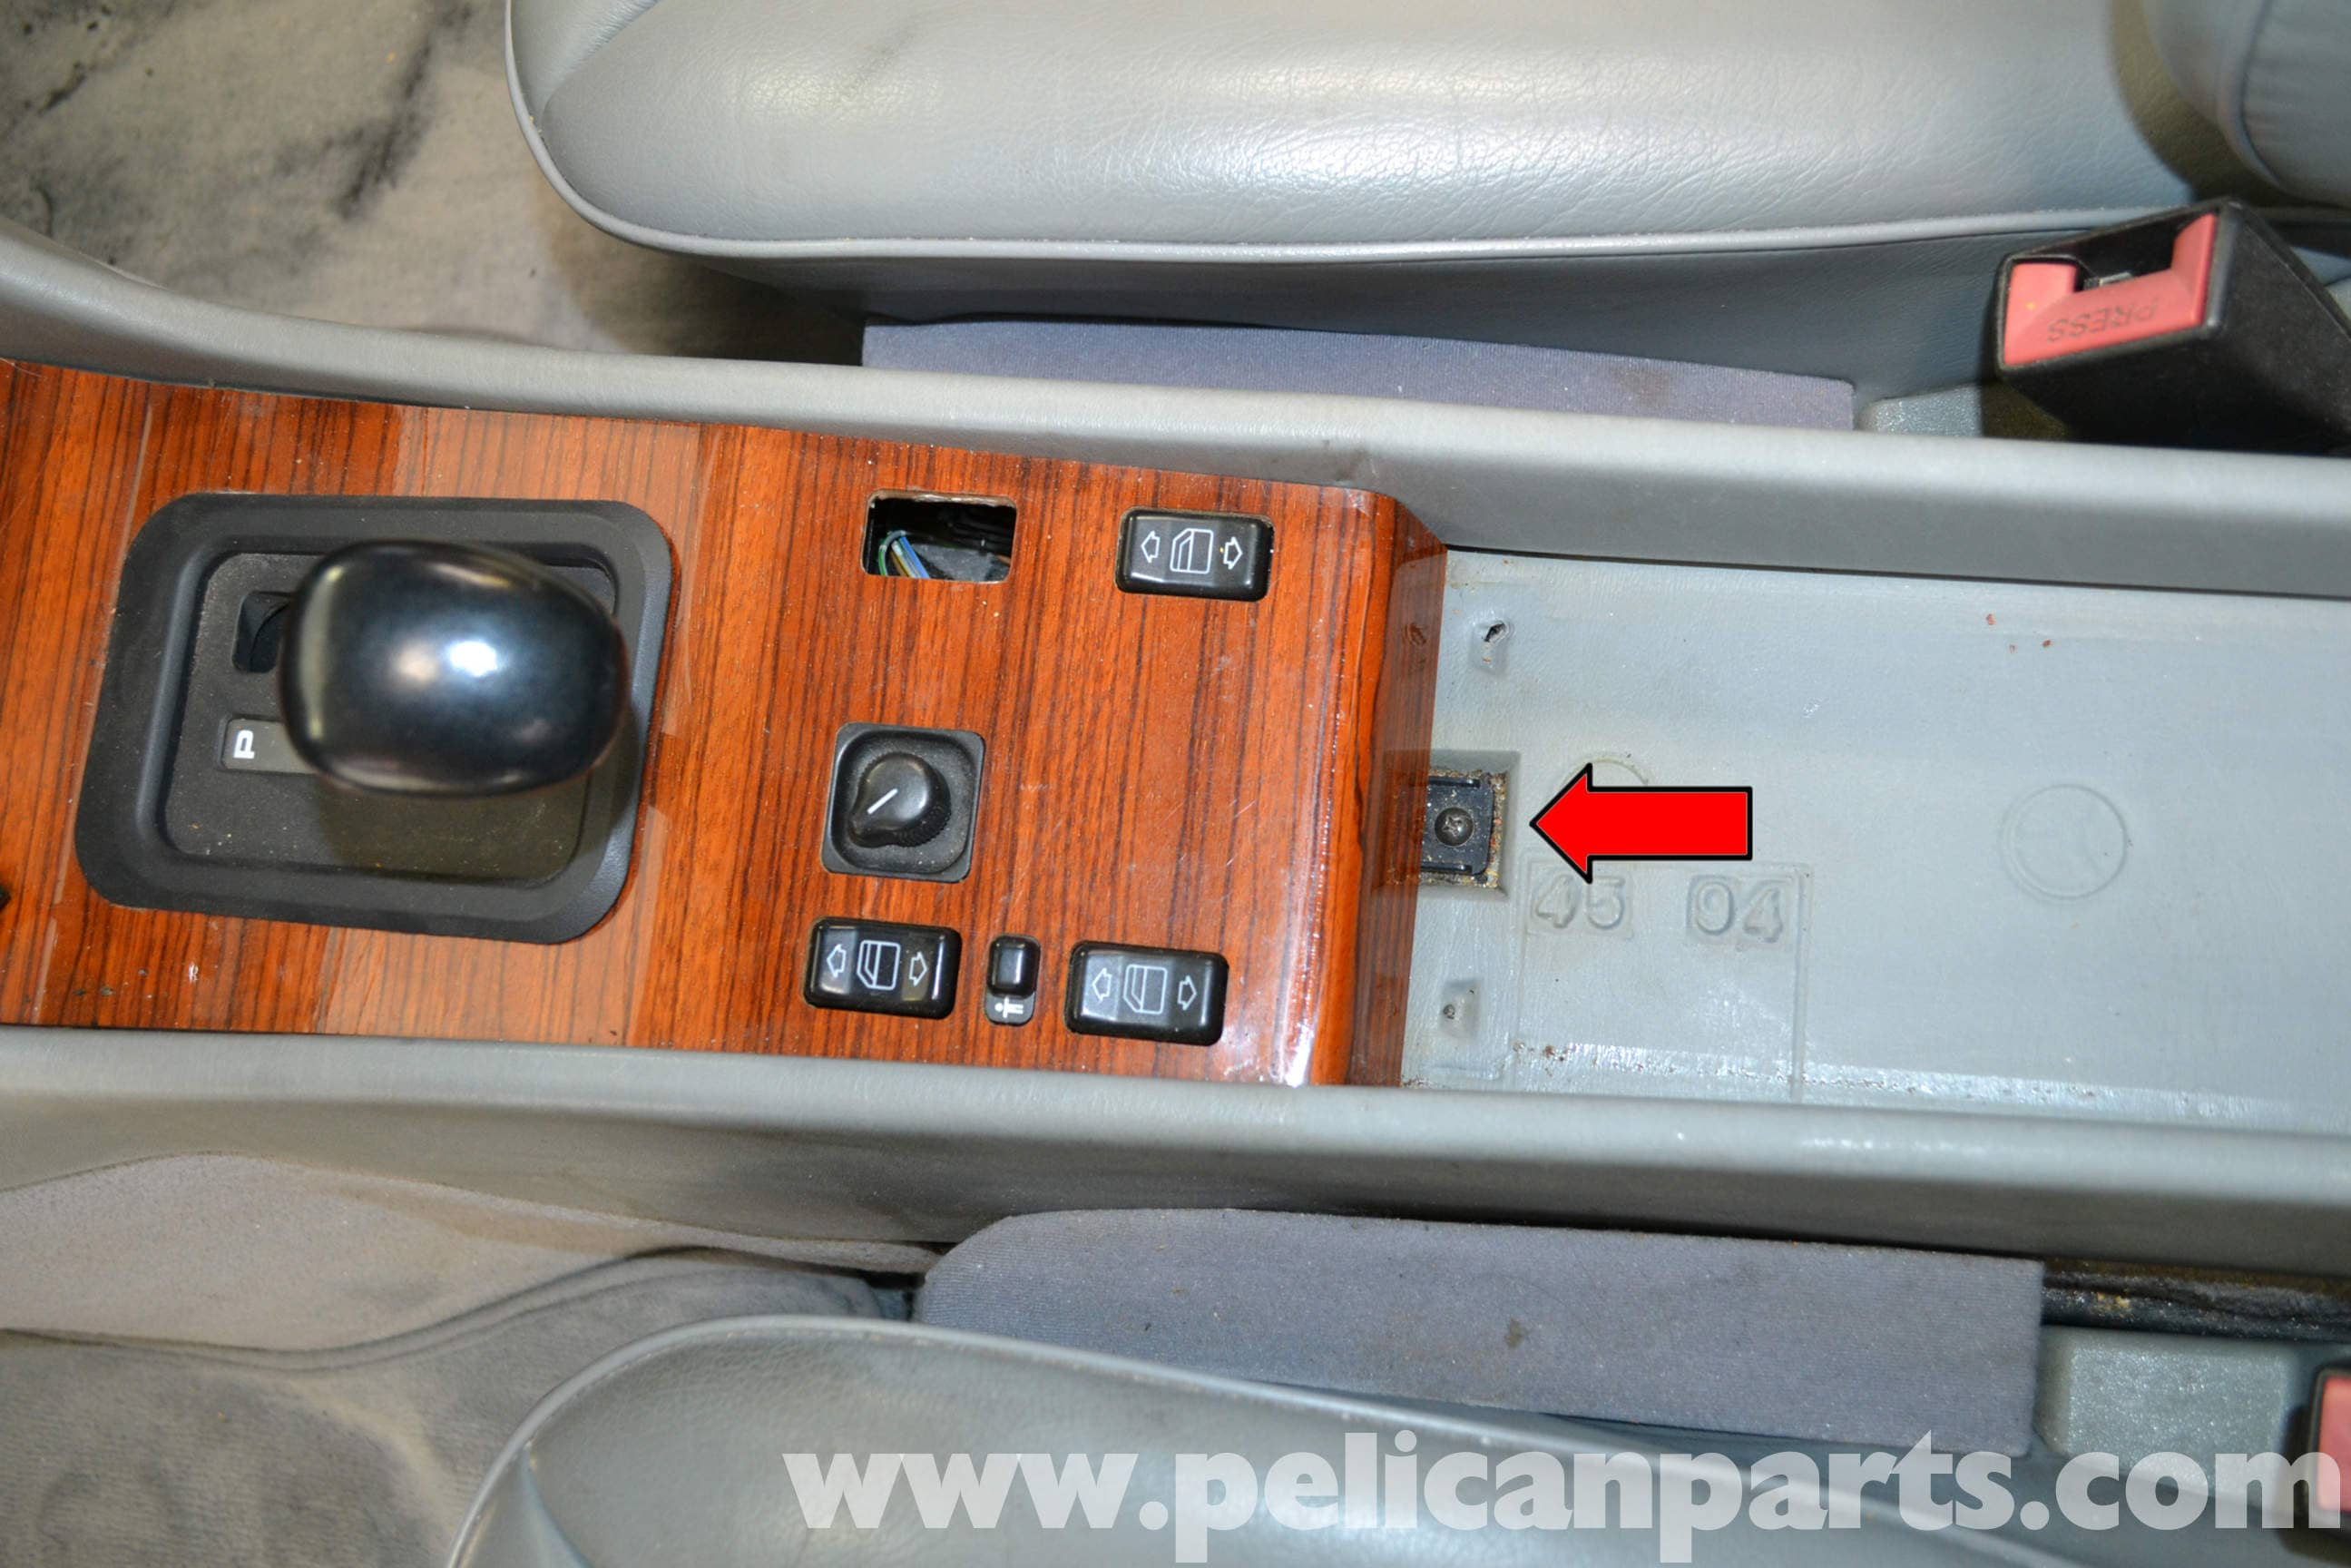 ... rear of the center console. Large Image | Extra-Large Image